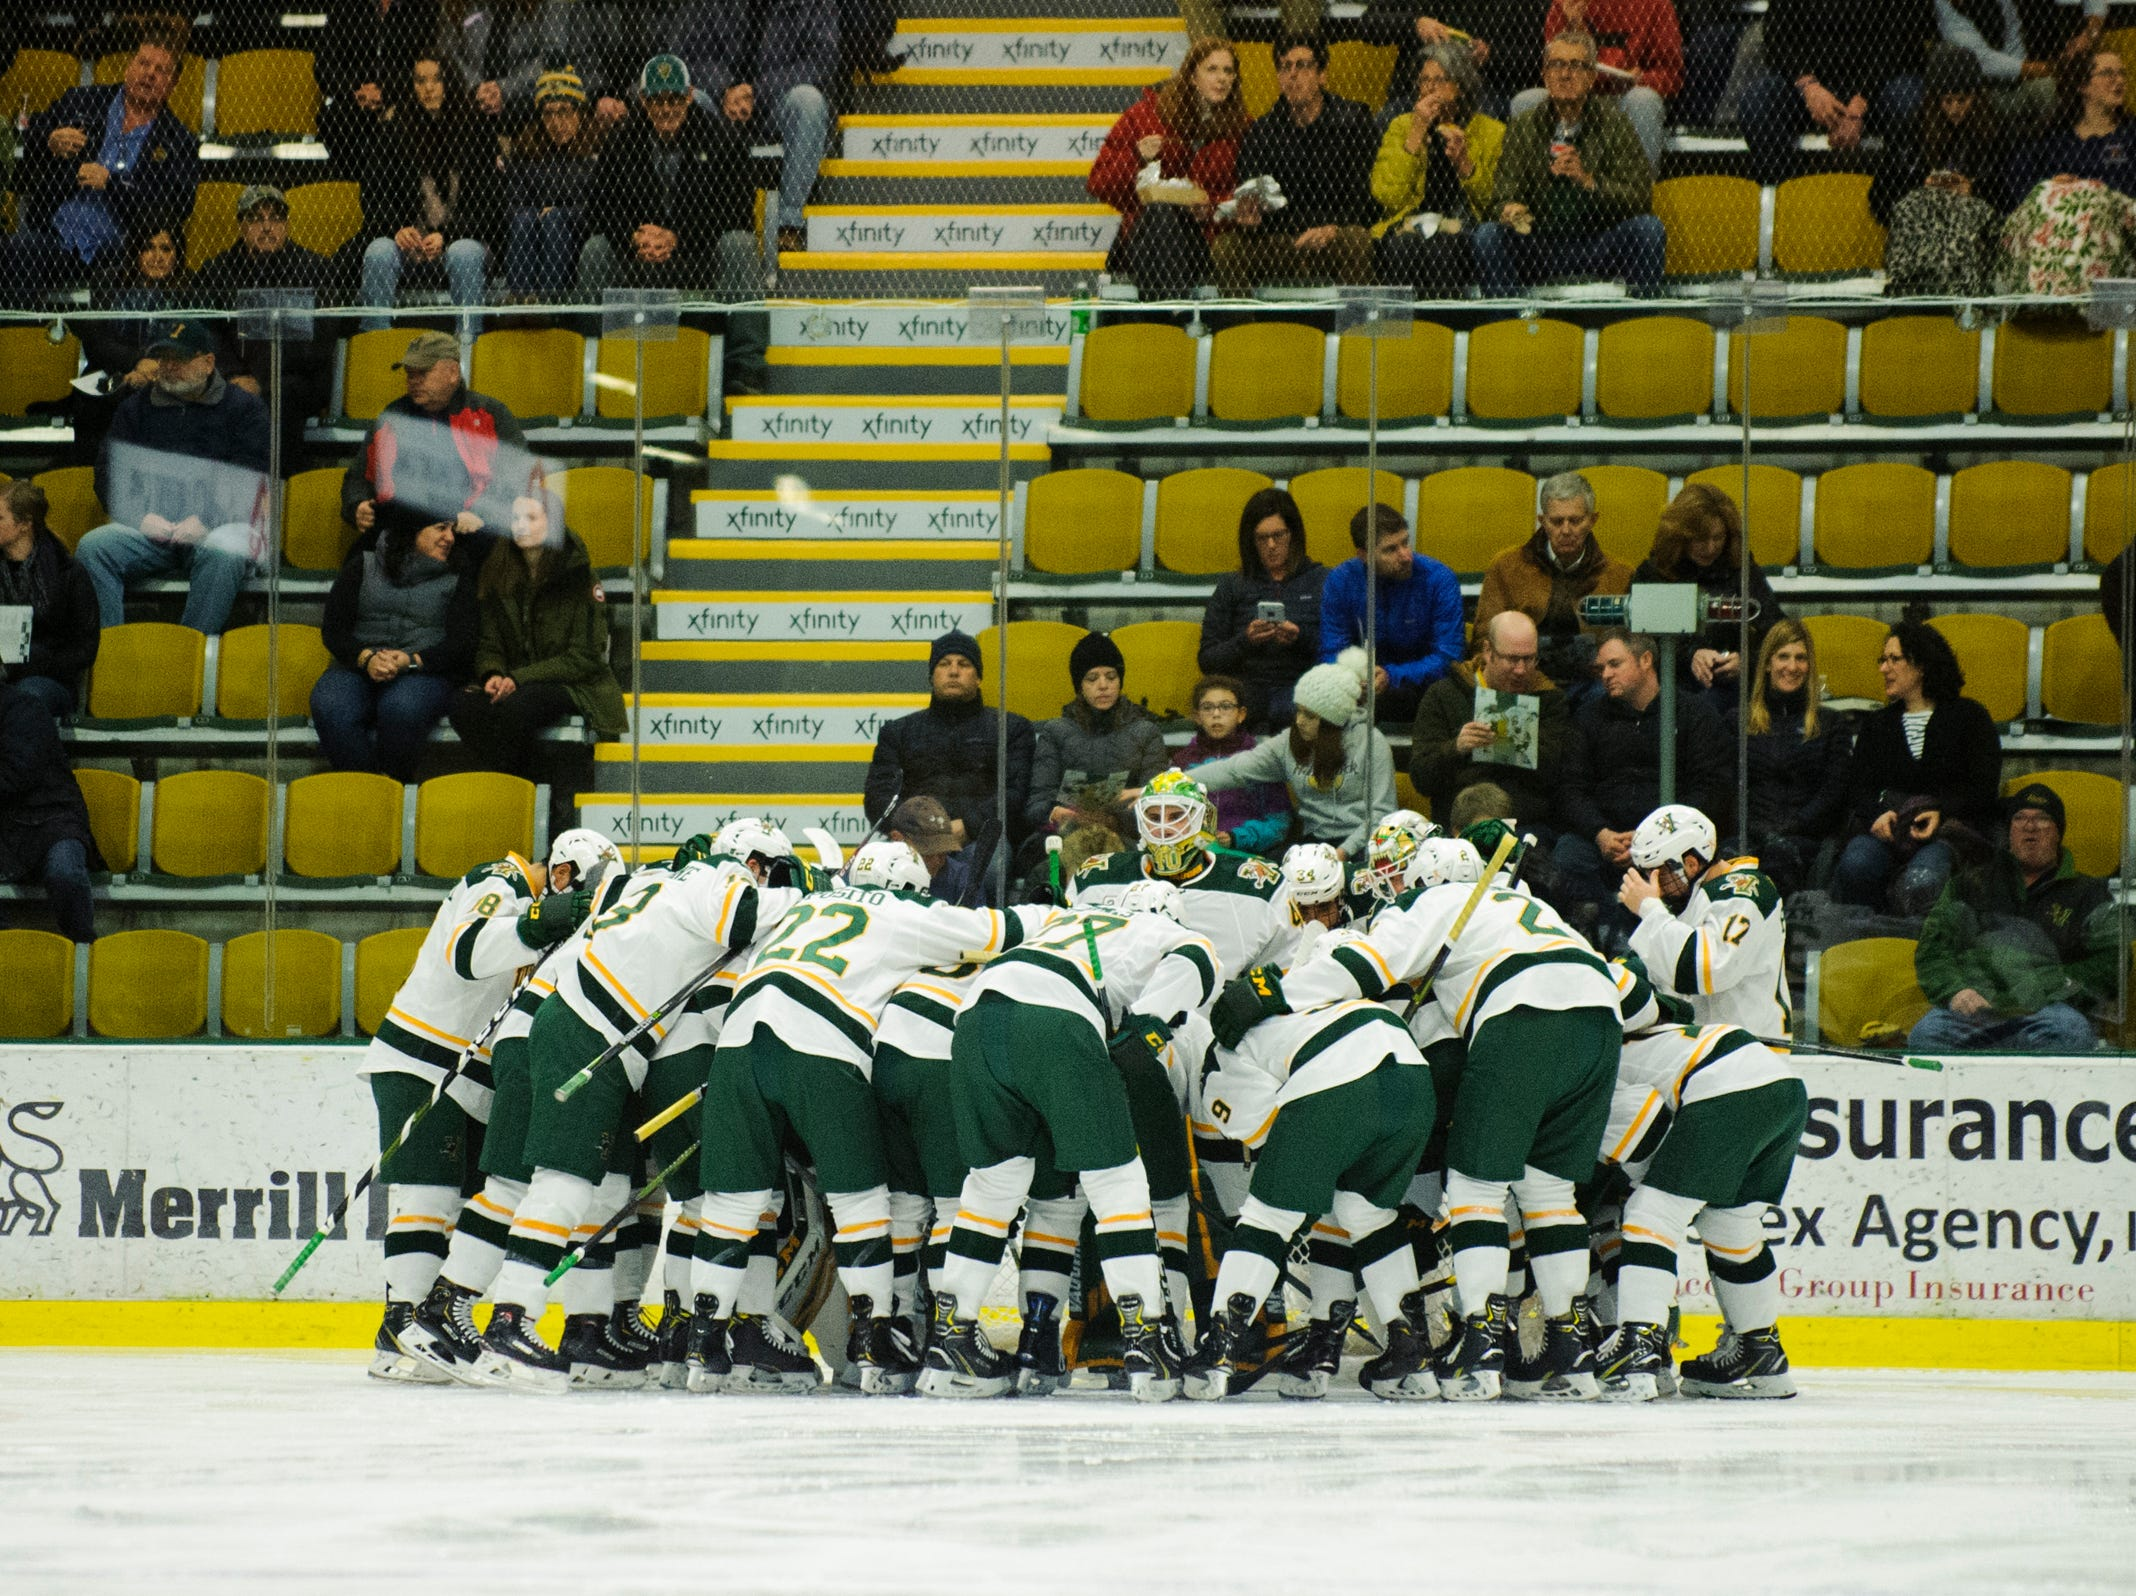 Vermont Huddles together during the men's hockey game between the Mine Black Bears and the Vermont Catamounts at Gutterson Field House on Friday night November 30, 2018 in Burlington.